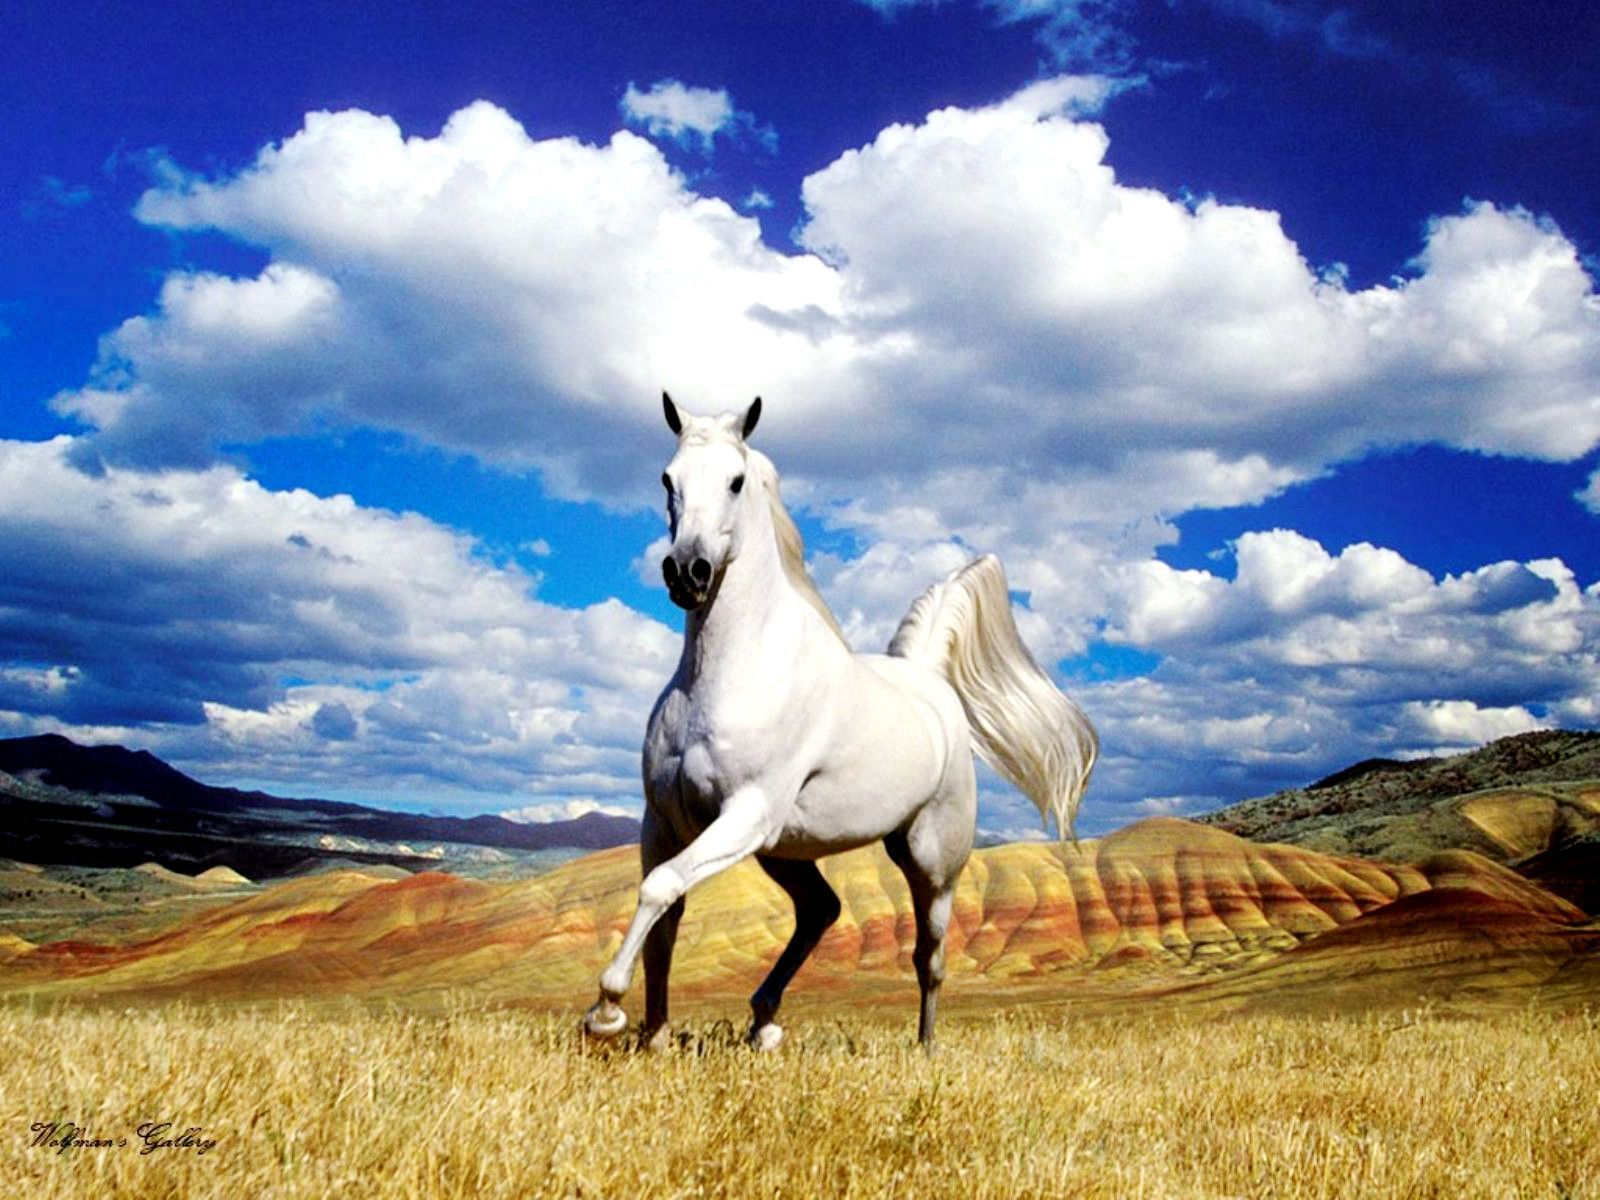 Great Wallpaper Horse Colorful - 1658a0cea1afbc45f30bdca8b8536c9f  2018_249956.jpg